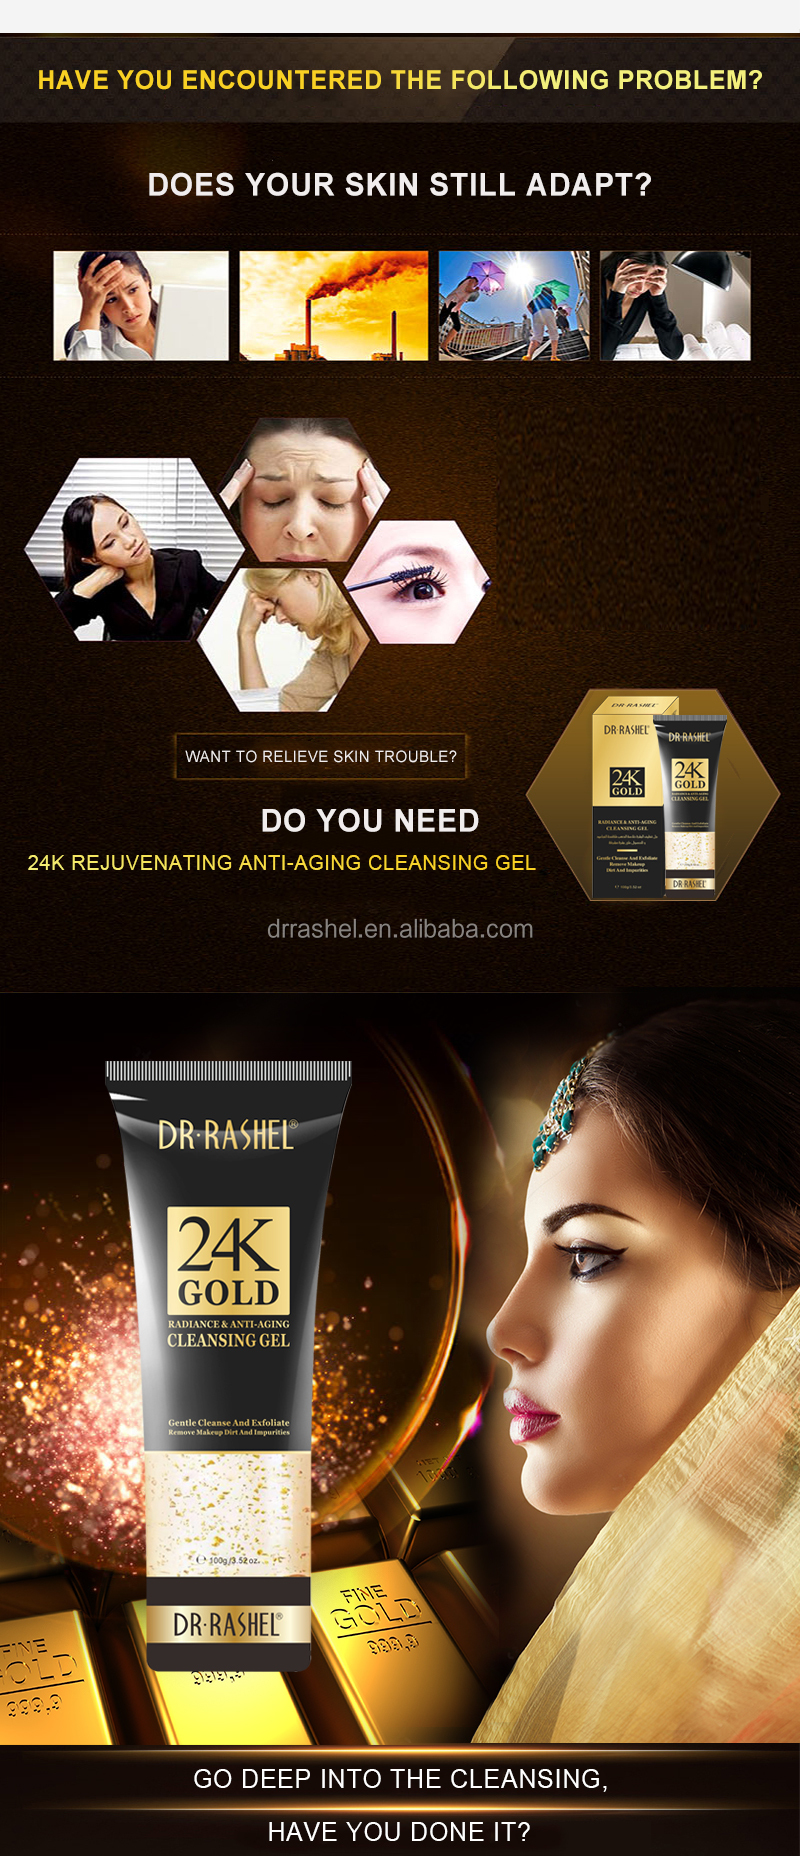 DR. RASHEL 24K GOLD RADINANCE & ANTI-AGING facial Wassen Gel reinigingsgel 100ml